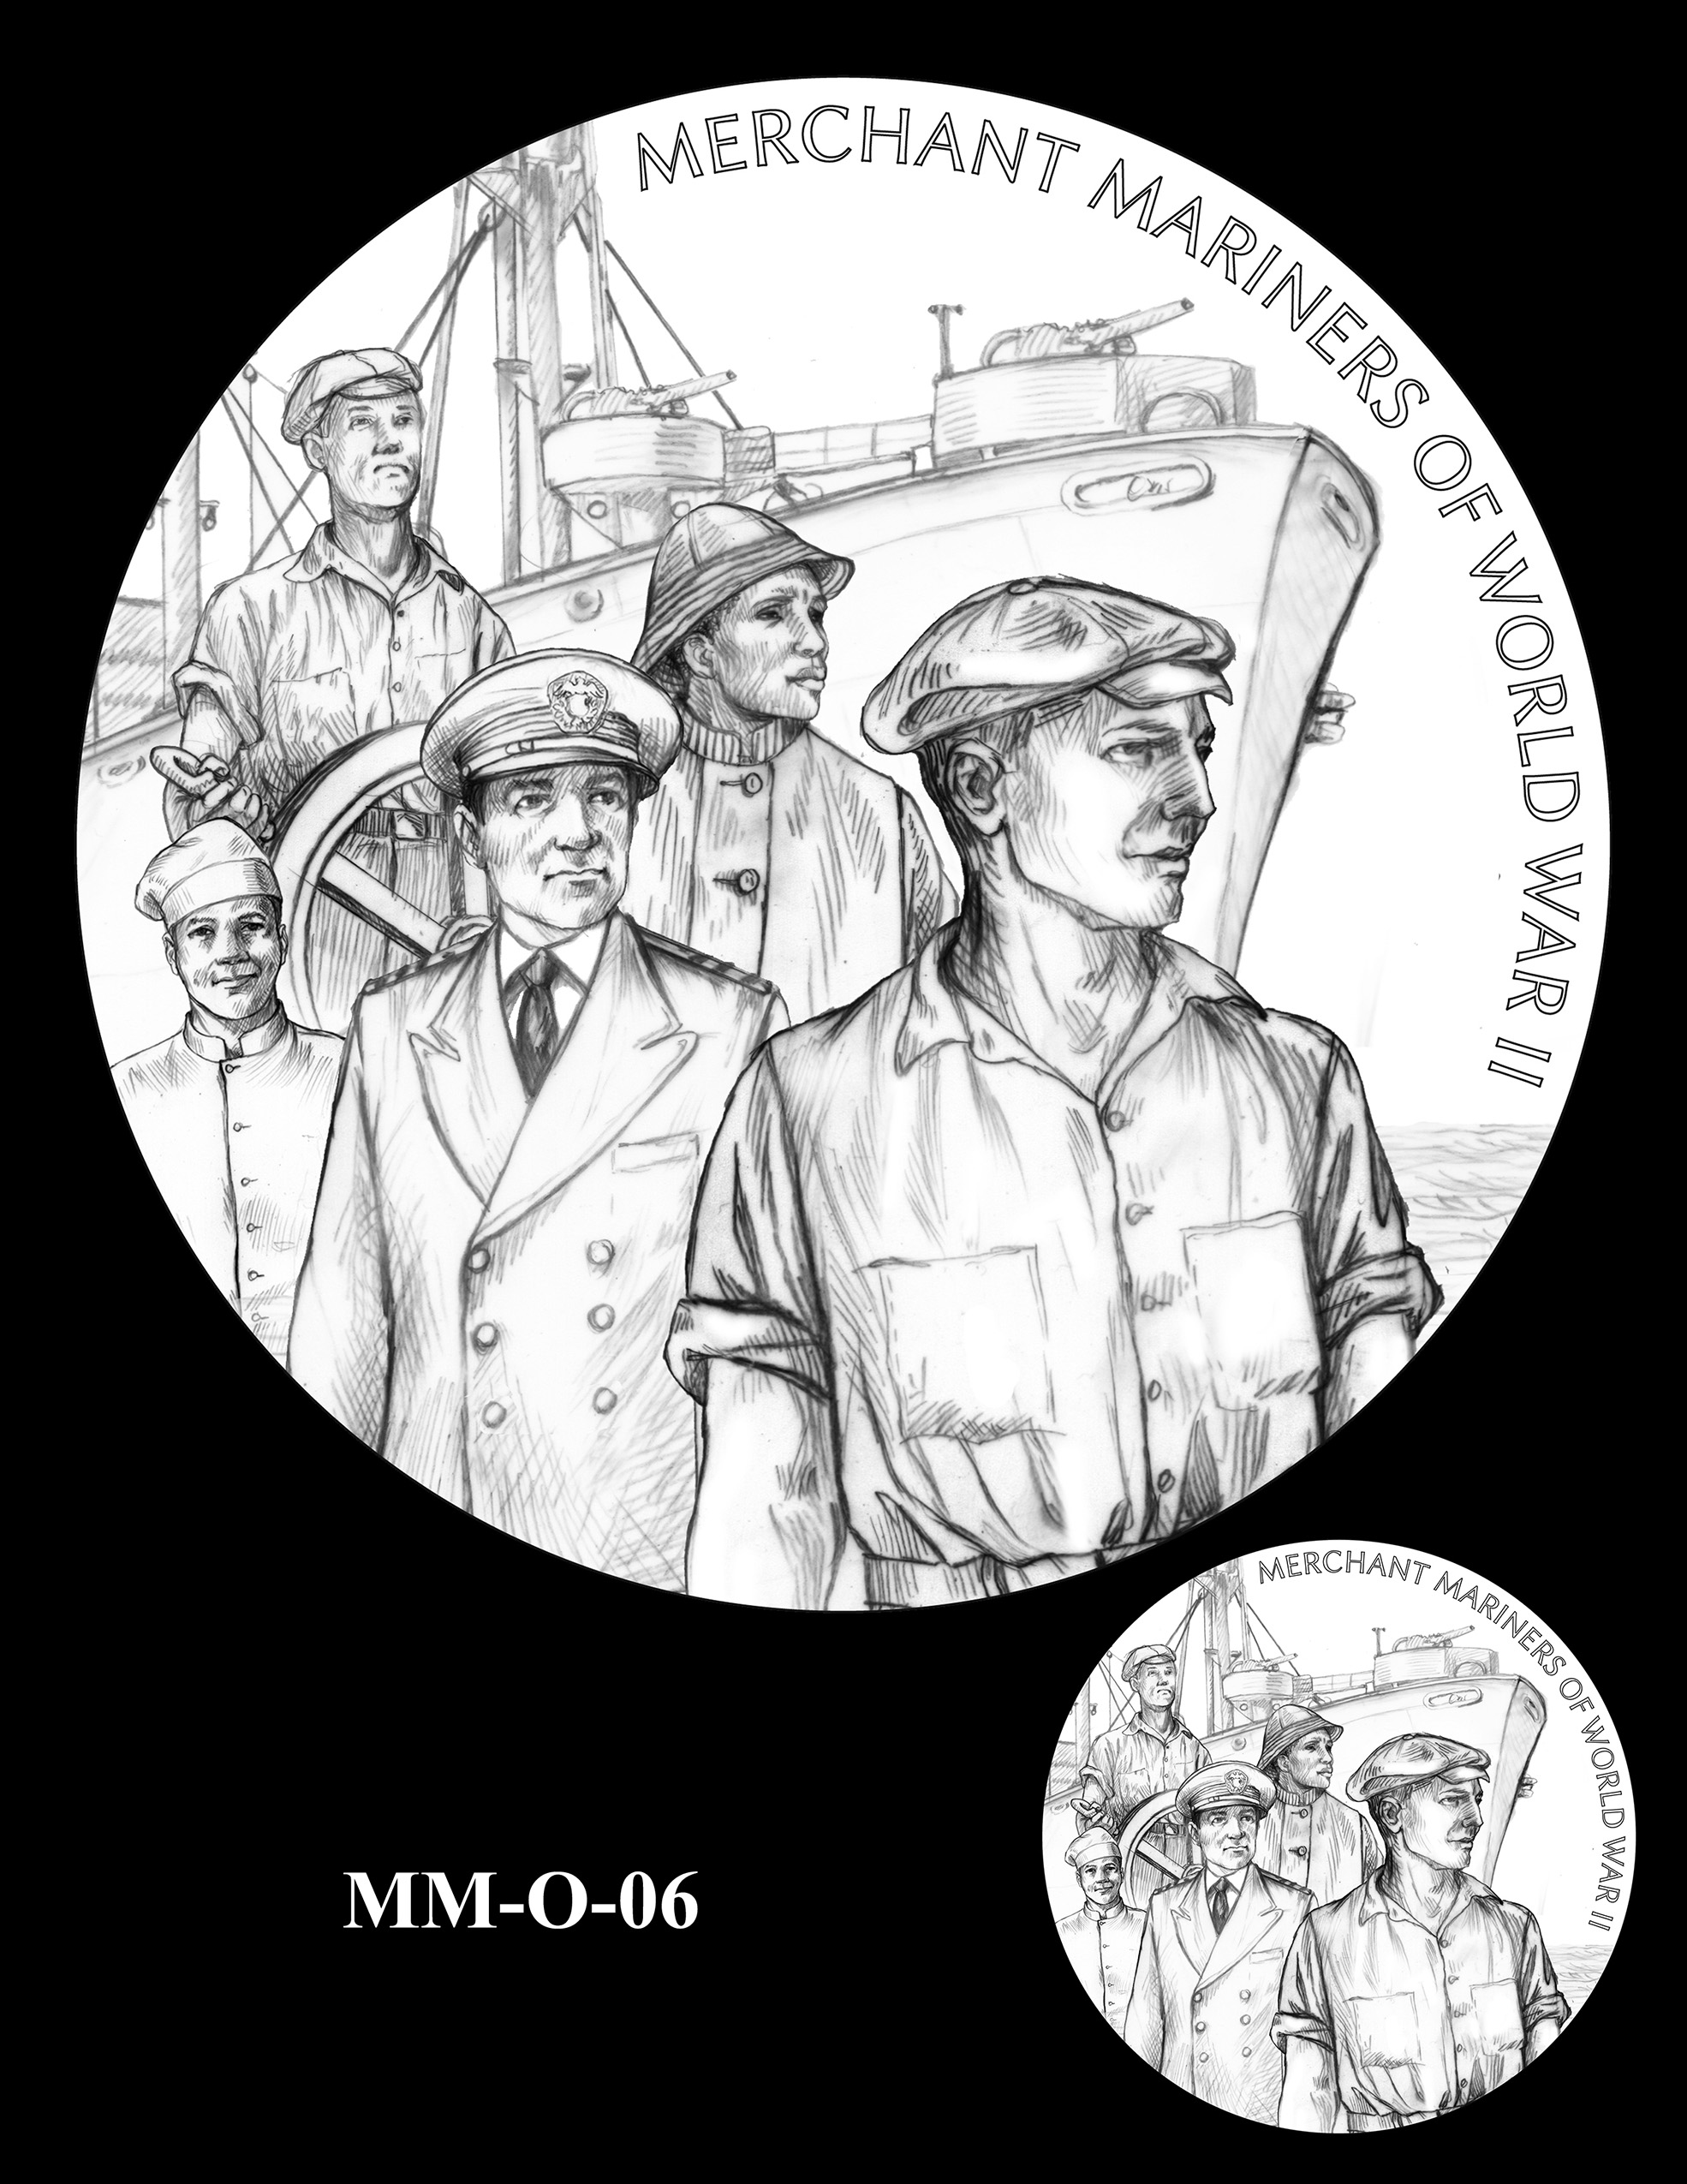 MM-O-06 -- Merchant Mariners of World War II Congressional Gold Medal